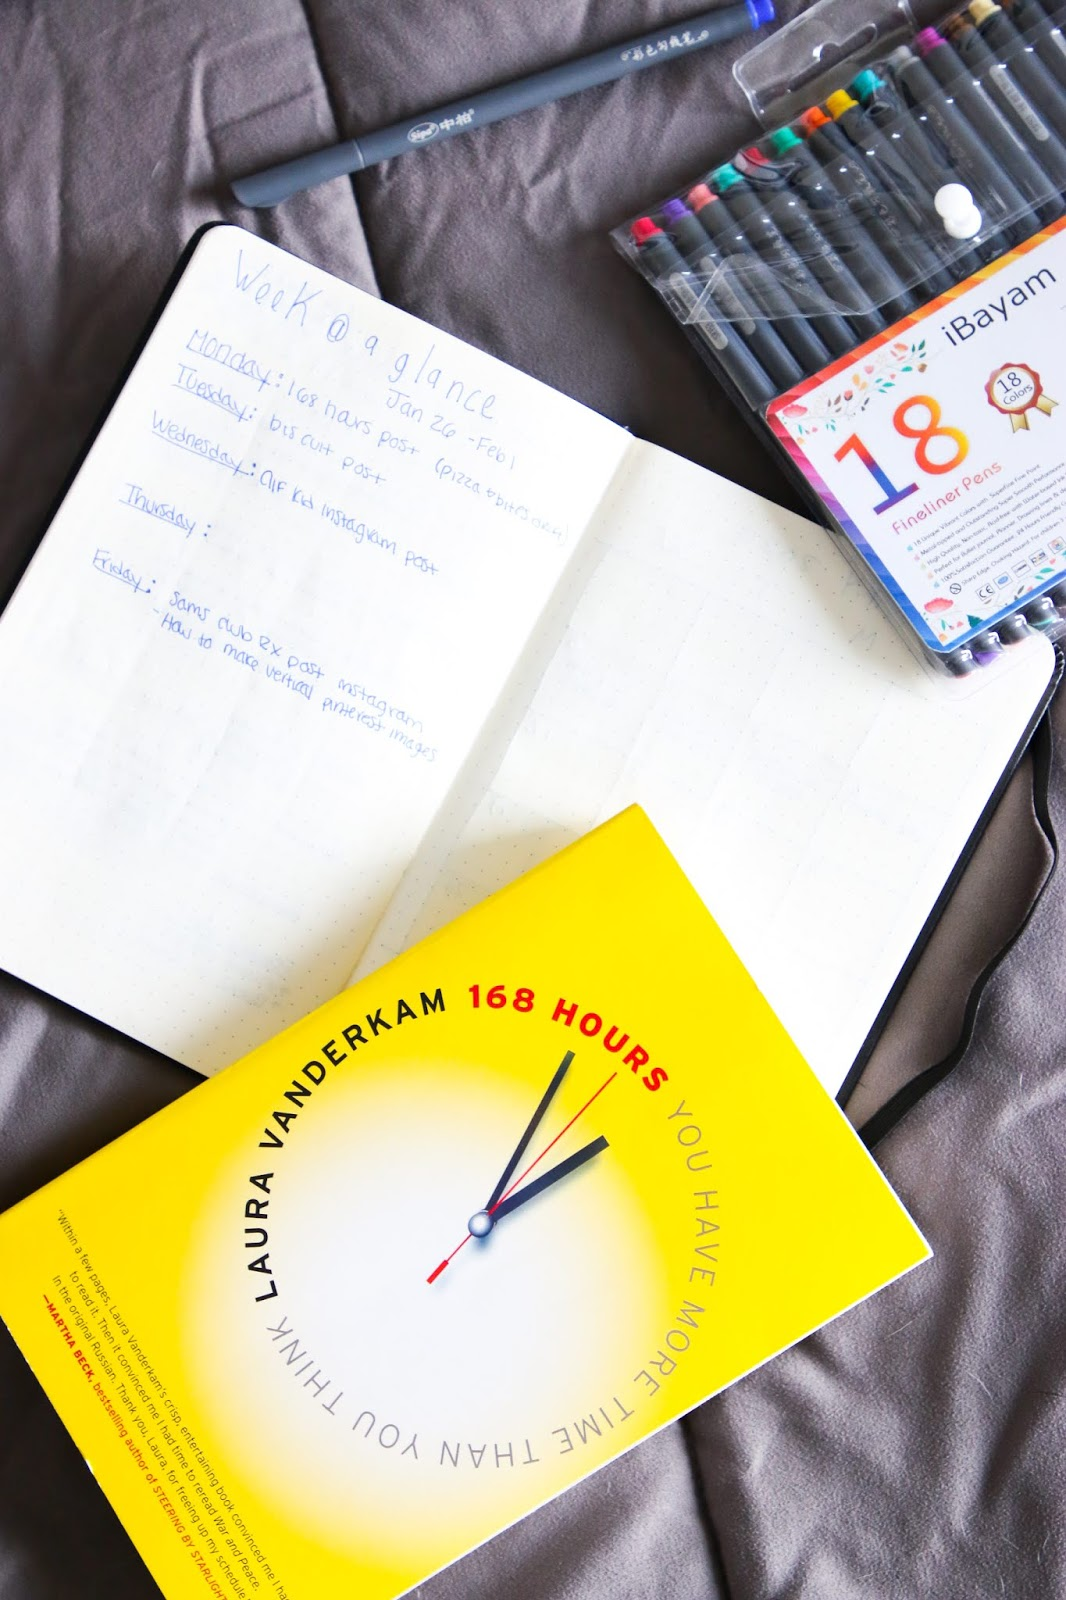 168 hours pdf free download. 168 hour days. Laura Vanderkam. You have more time than you think pdf. 168 hours excel worksheet. 168 planner. 168 hours ted talk. 168 hour exercise.